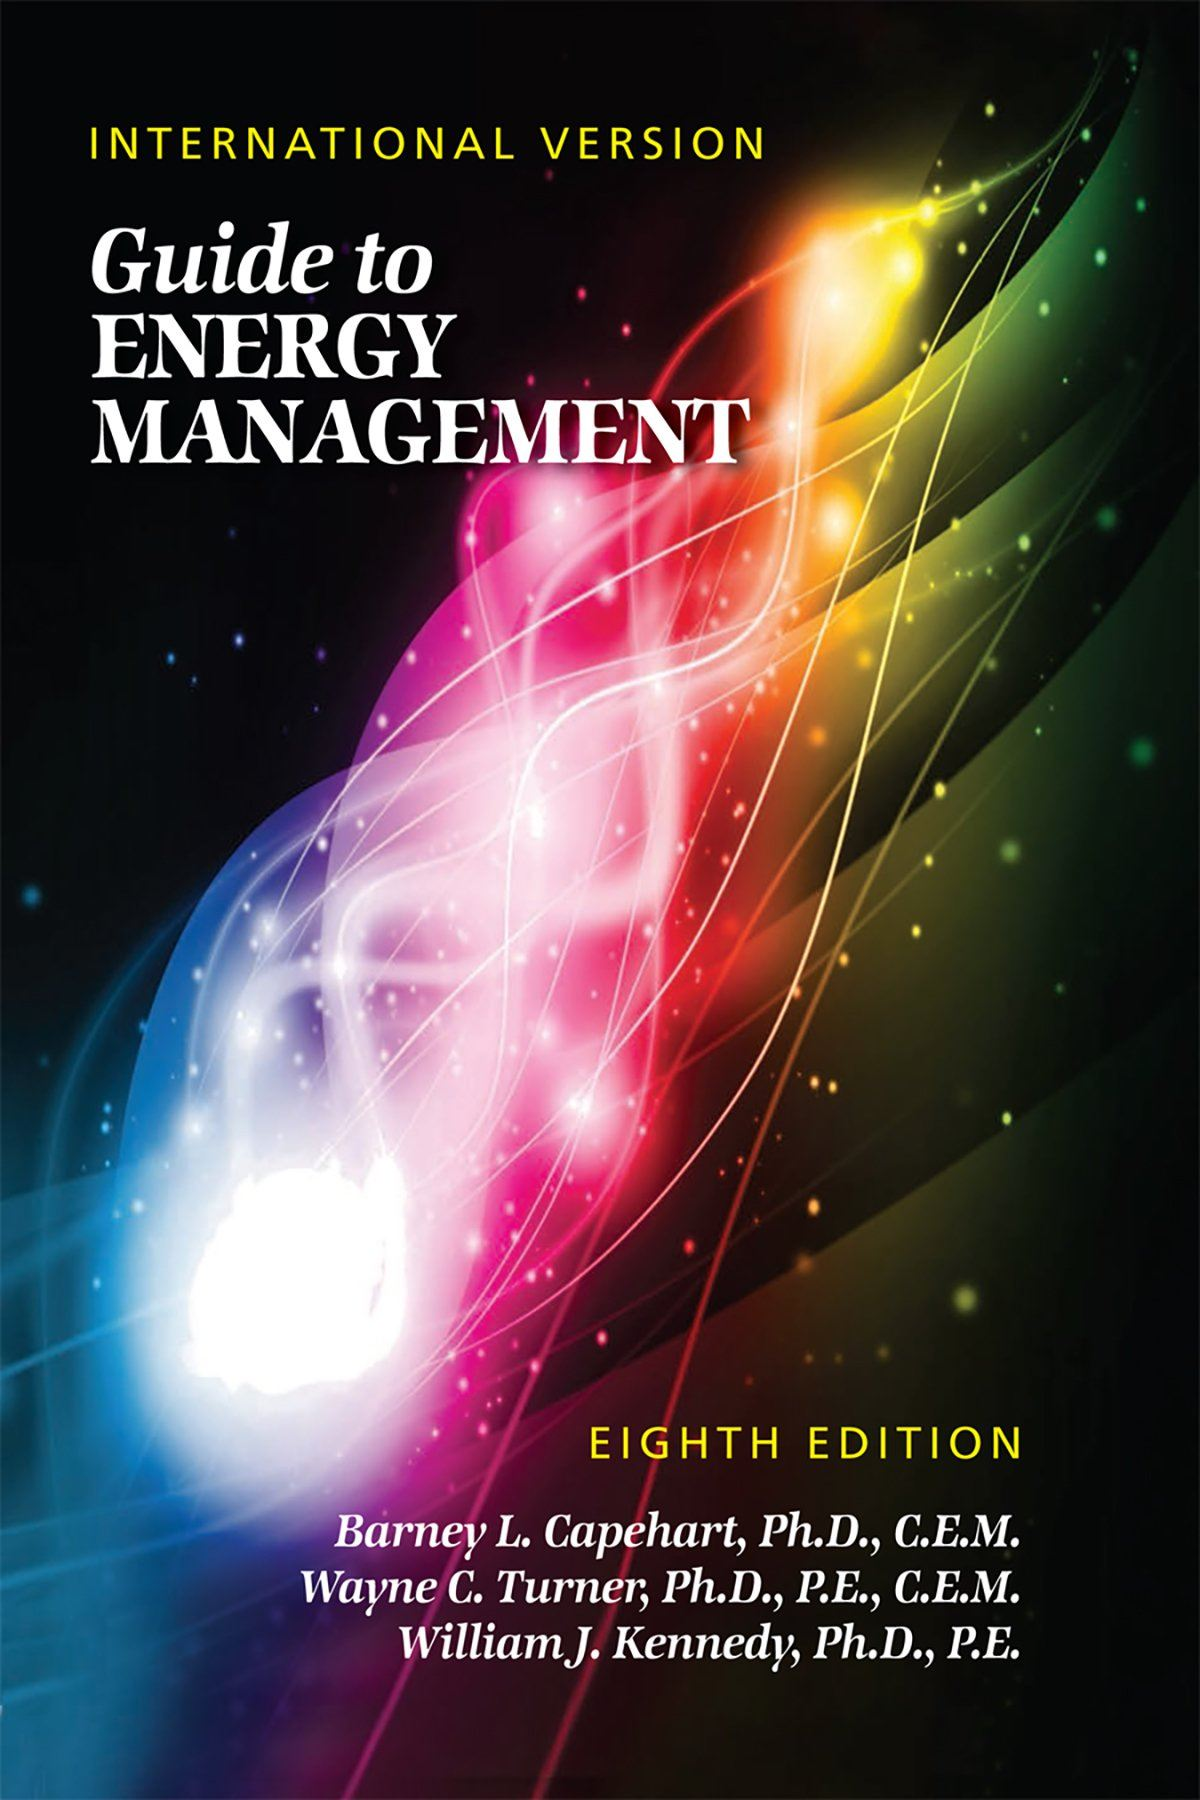 Guide to Energy Management, 8th ed./ Int'l Version